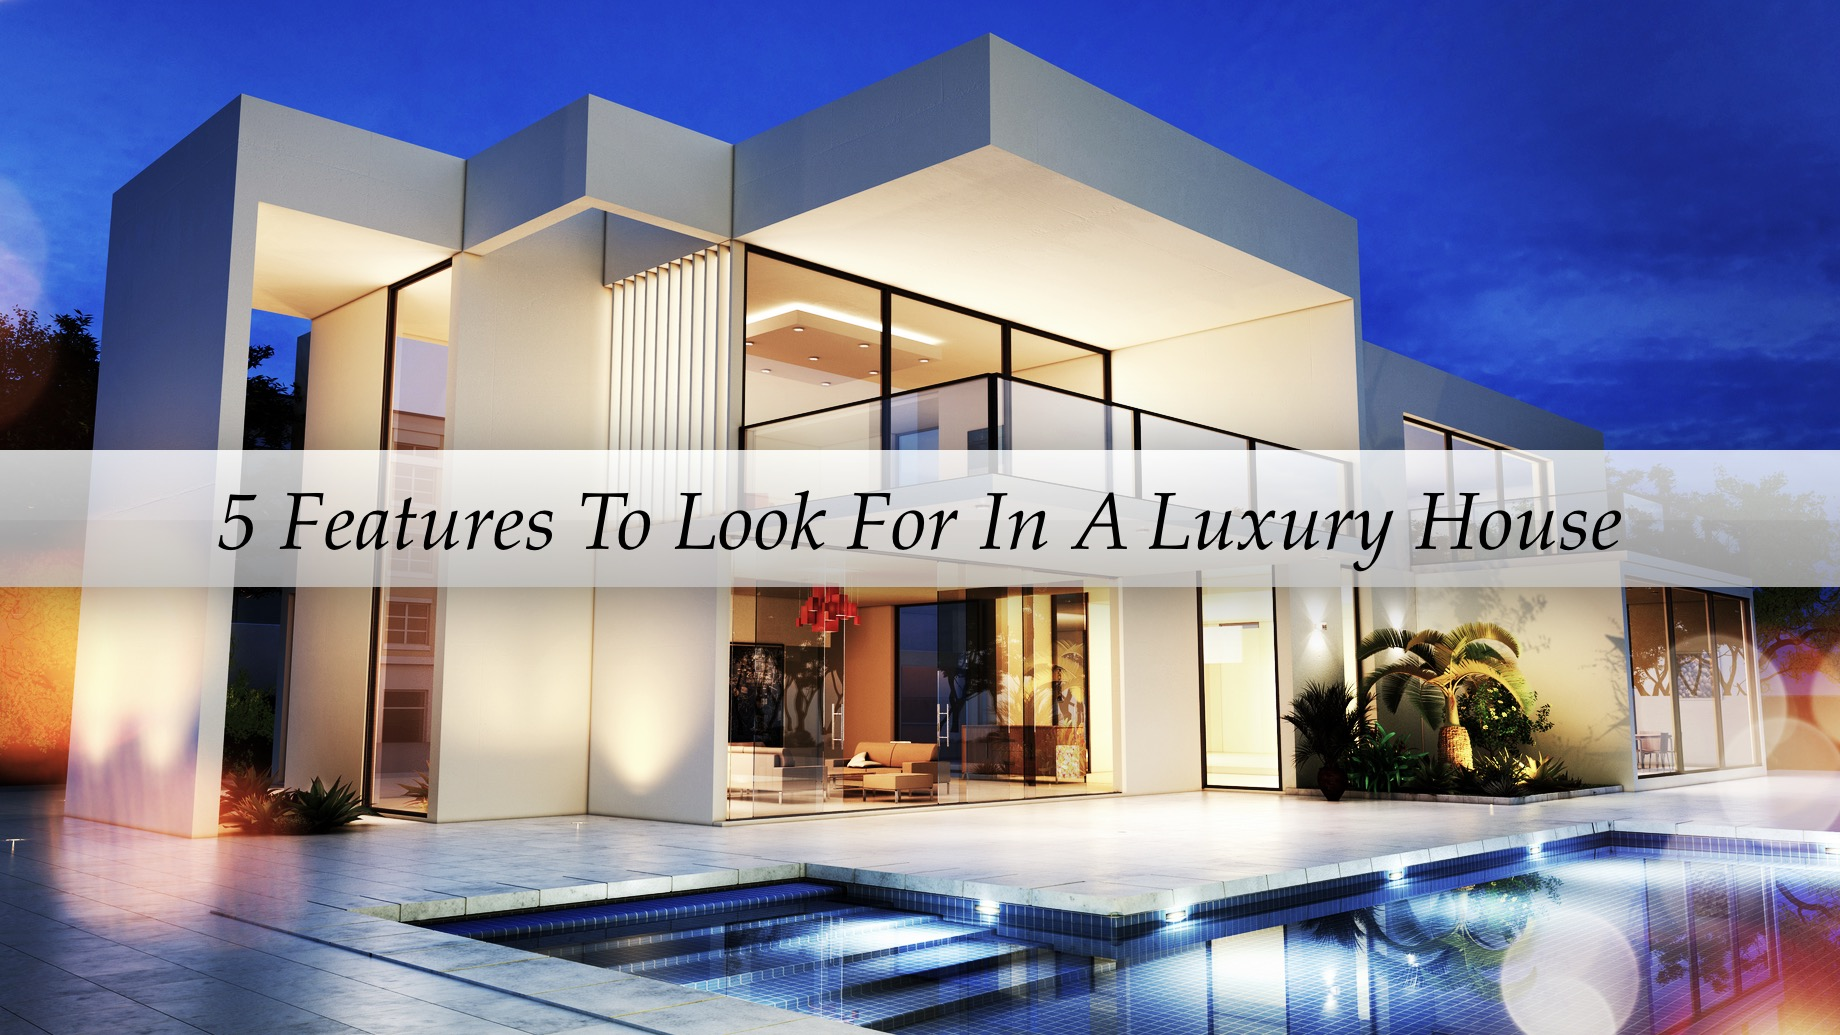 5 Features To Look For In A Luxury House